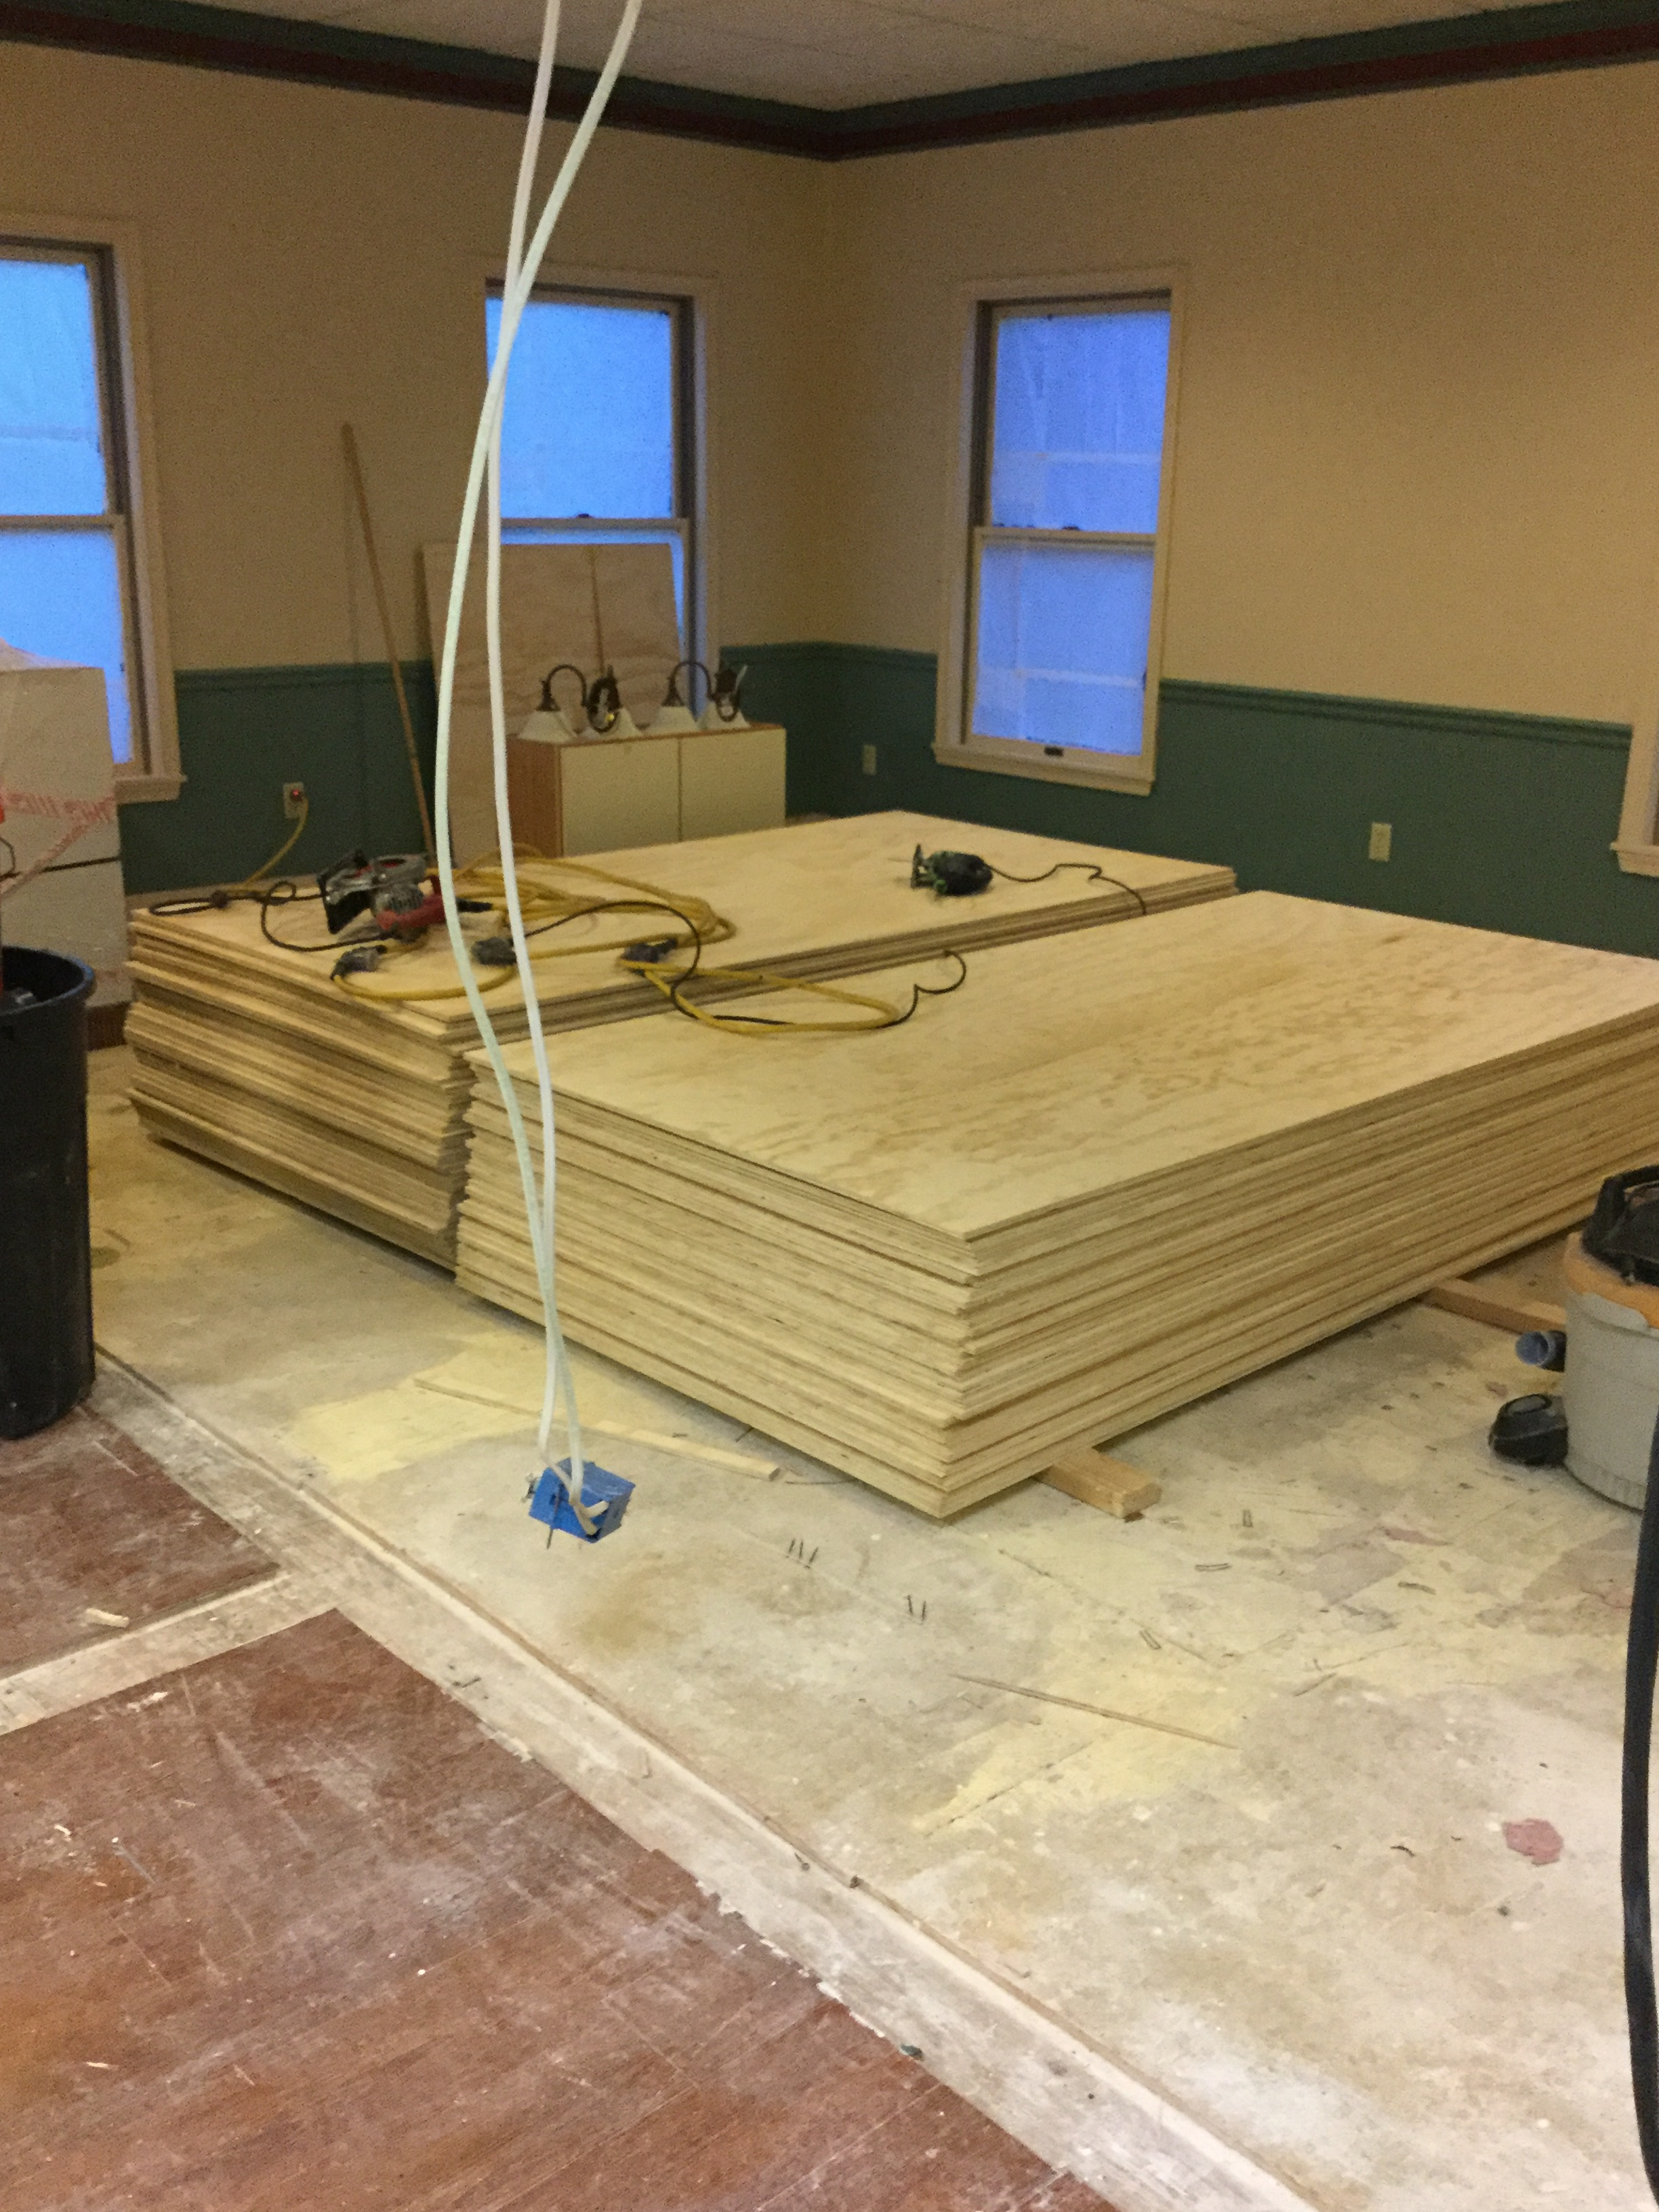 Delivery! Plywood for the base under the epoxy floor. 90 sheets were cut to fit and screwed in with 12,000 screws.